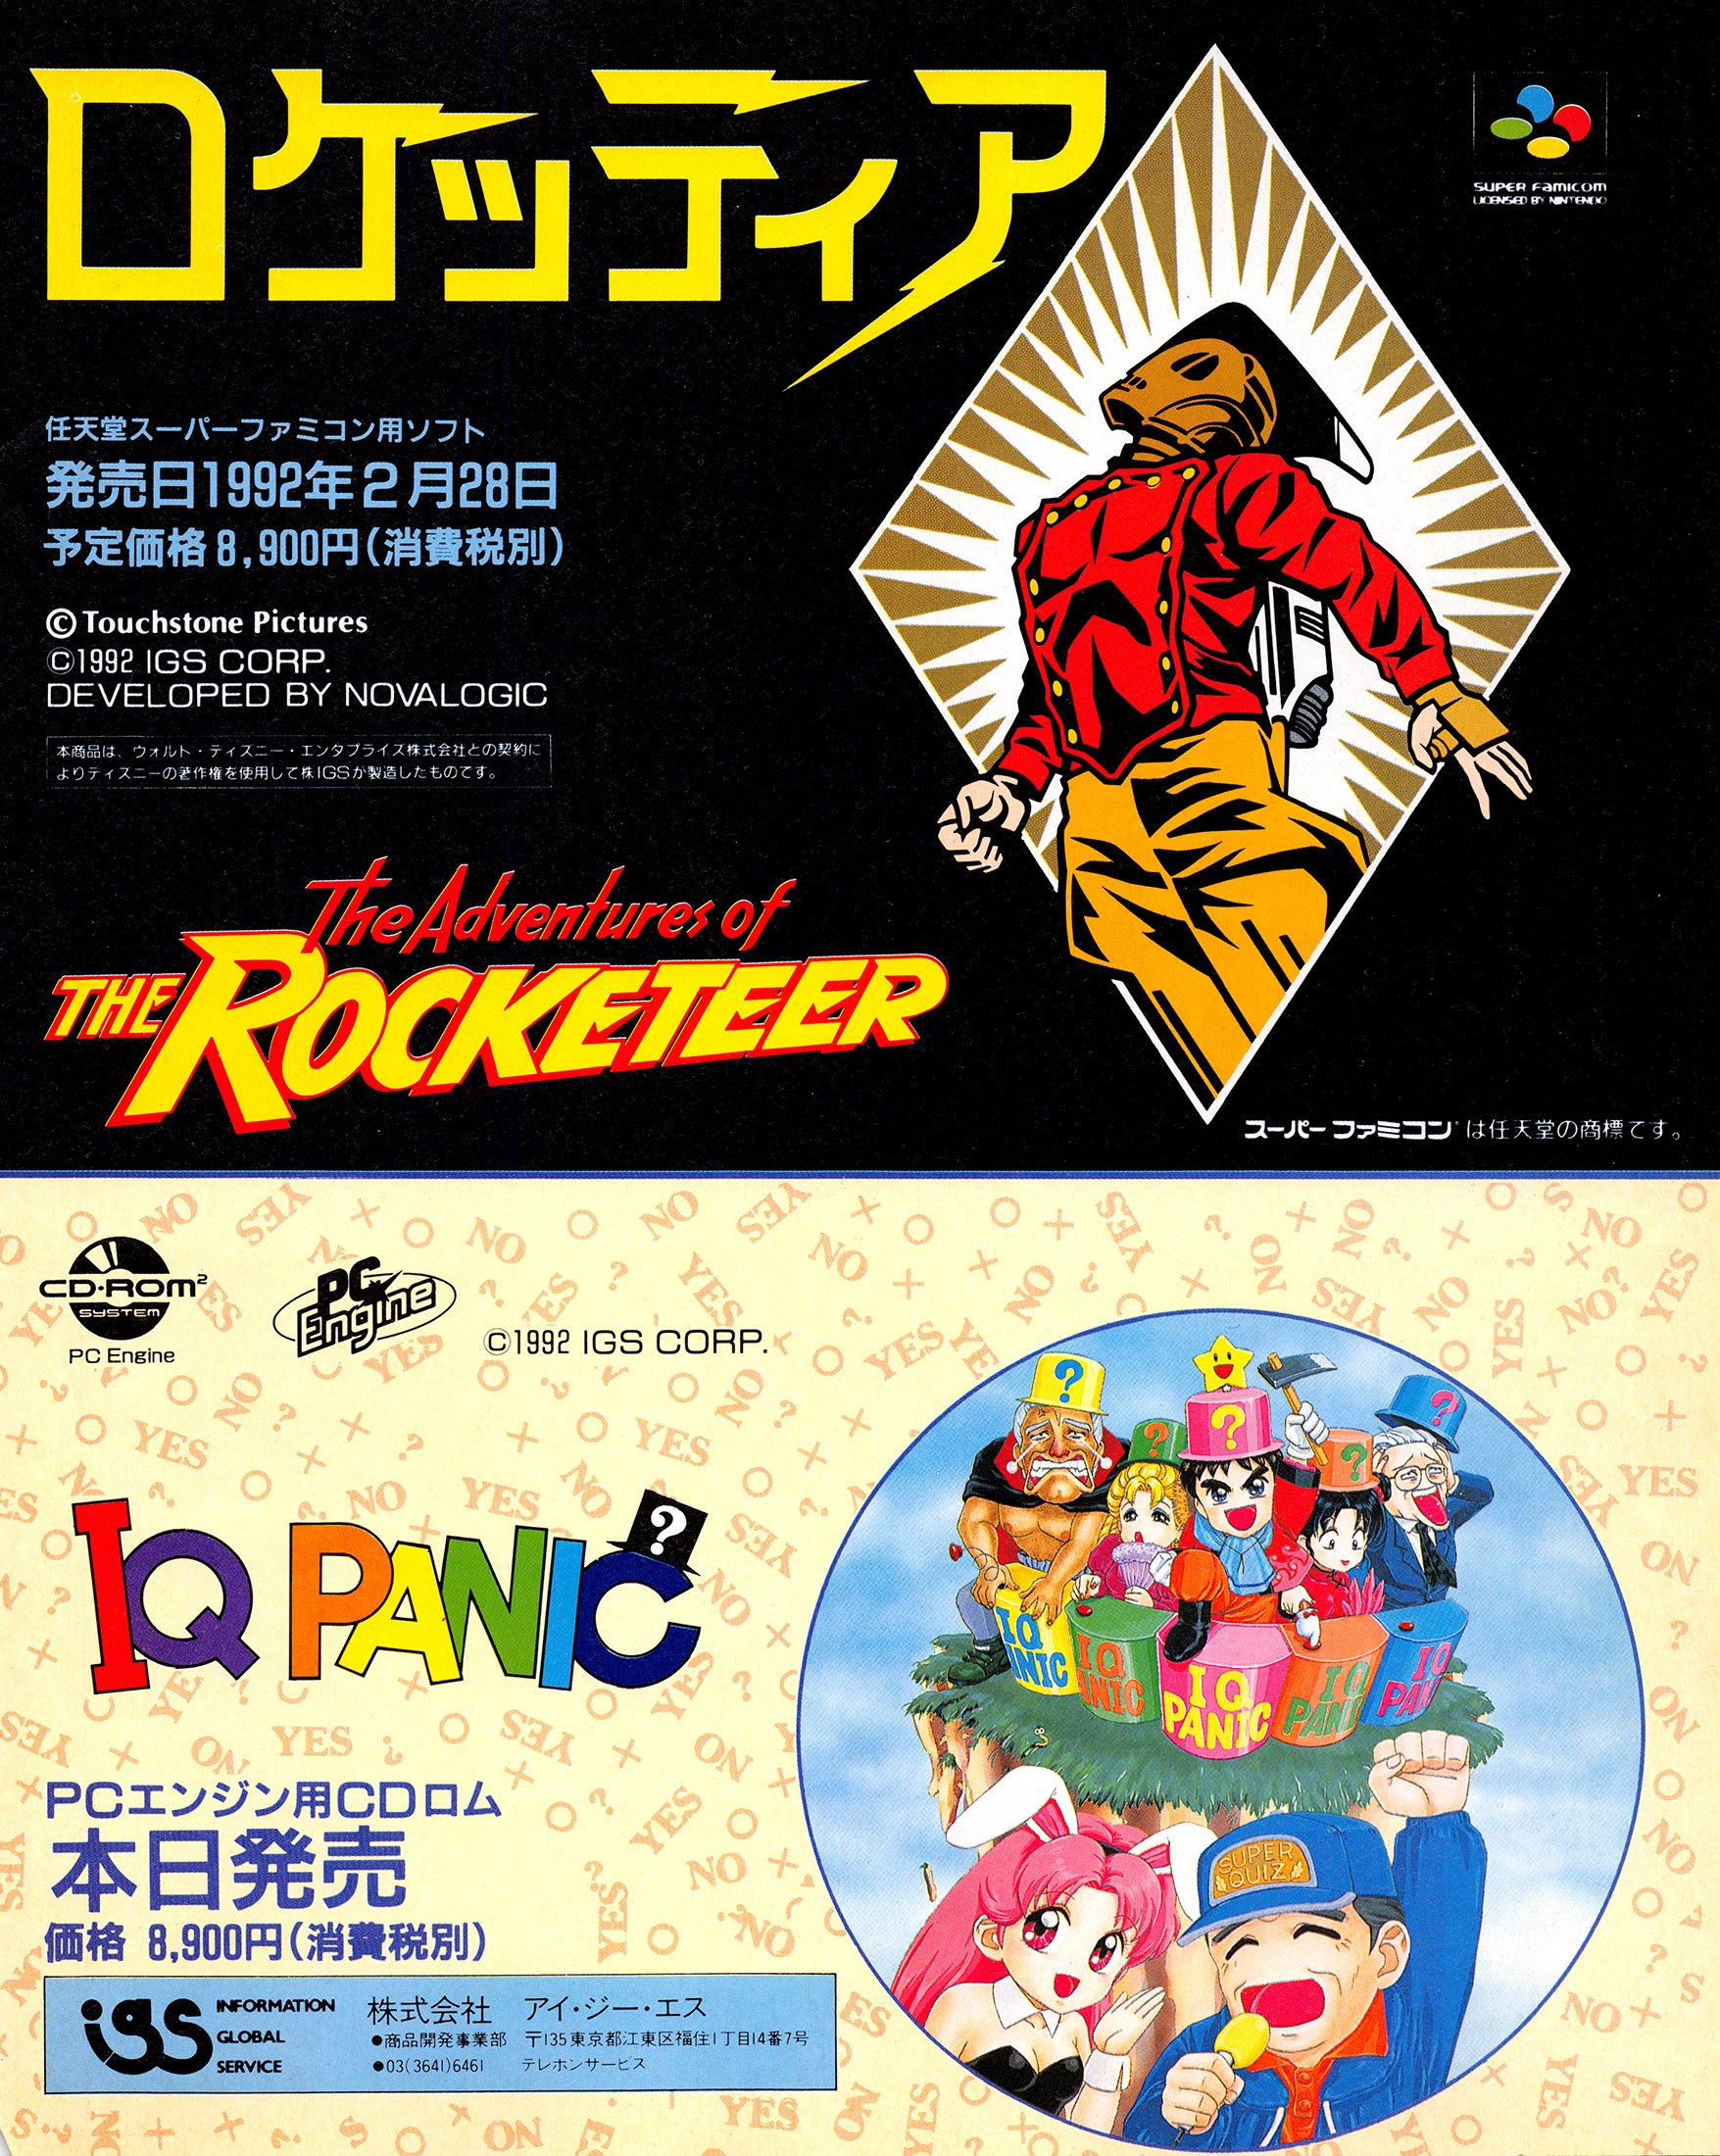 Rocketeer, The (The Adventures of the Rocketeer), IQ Panic